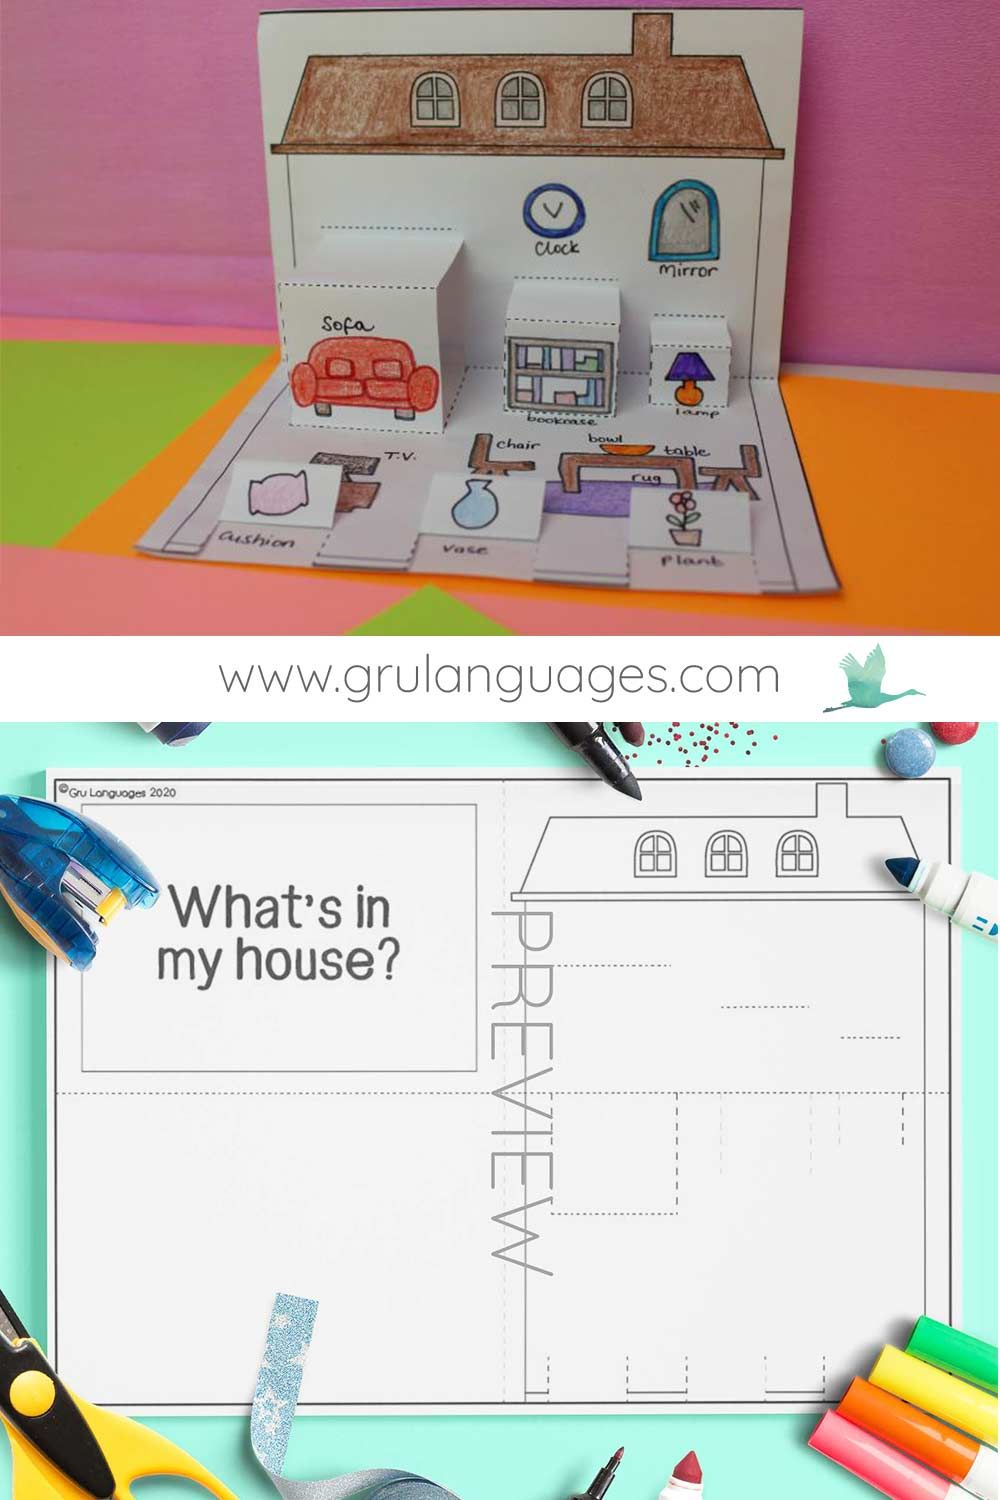 My House Pop Up Craft Gru Languages Learning English For Kids Activities Vocabulary Activities